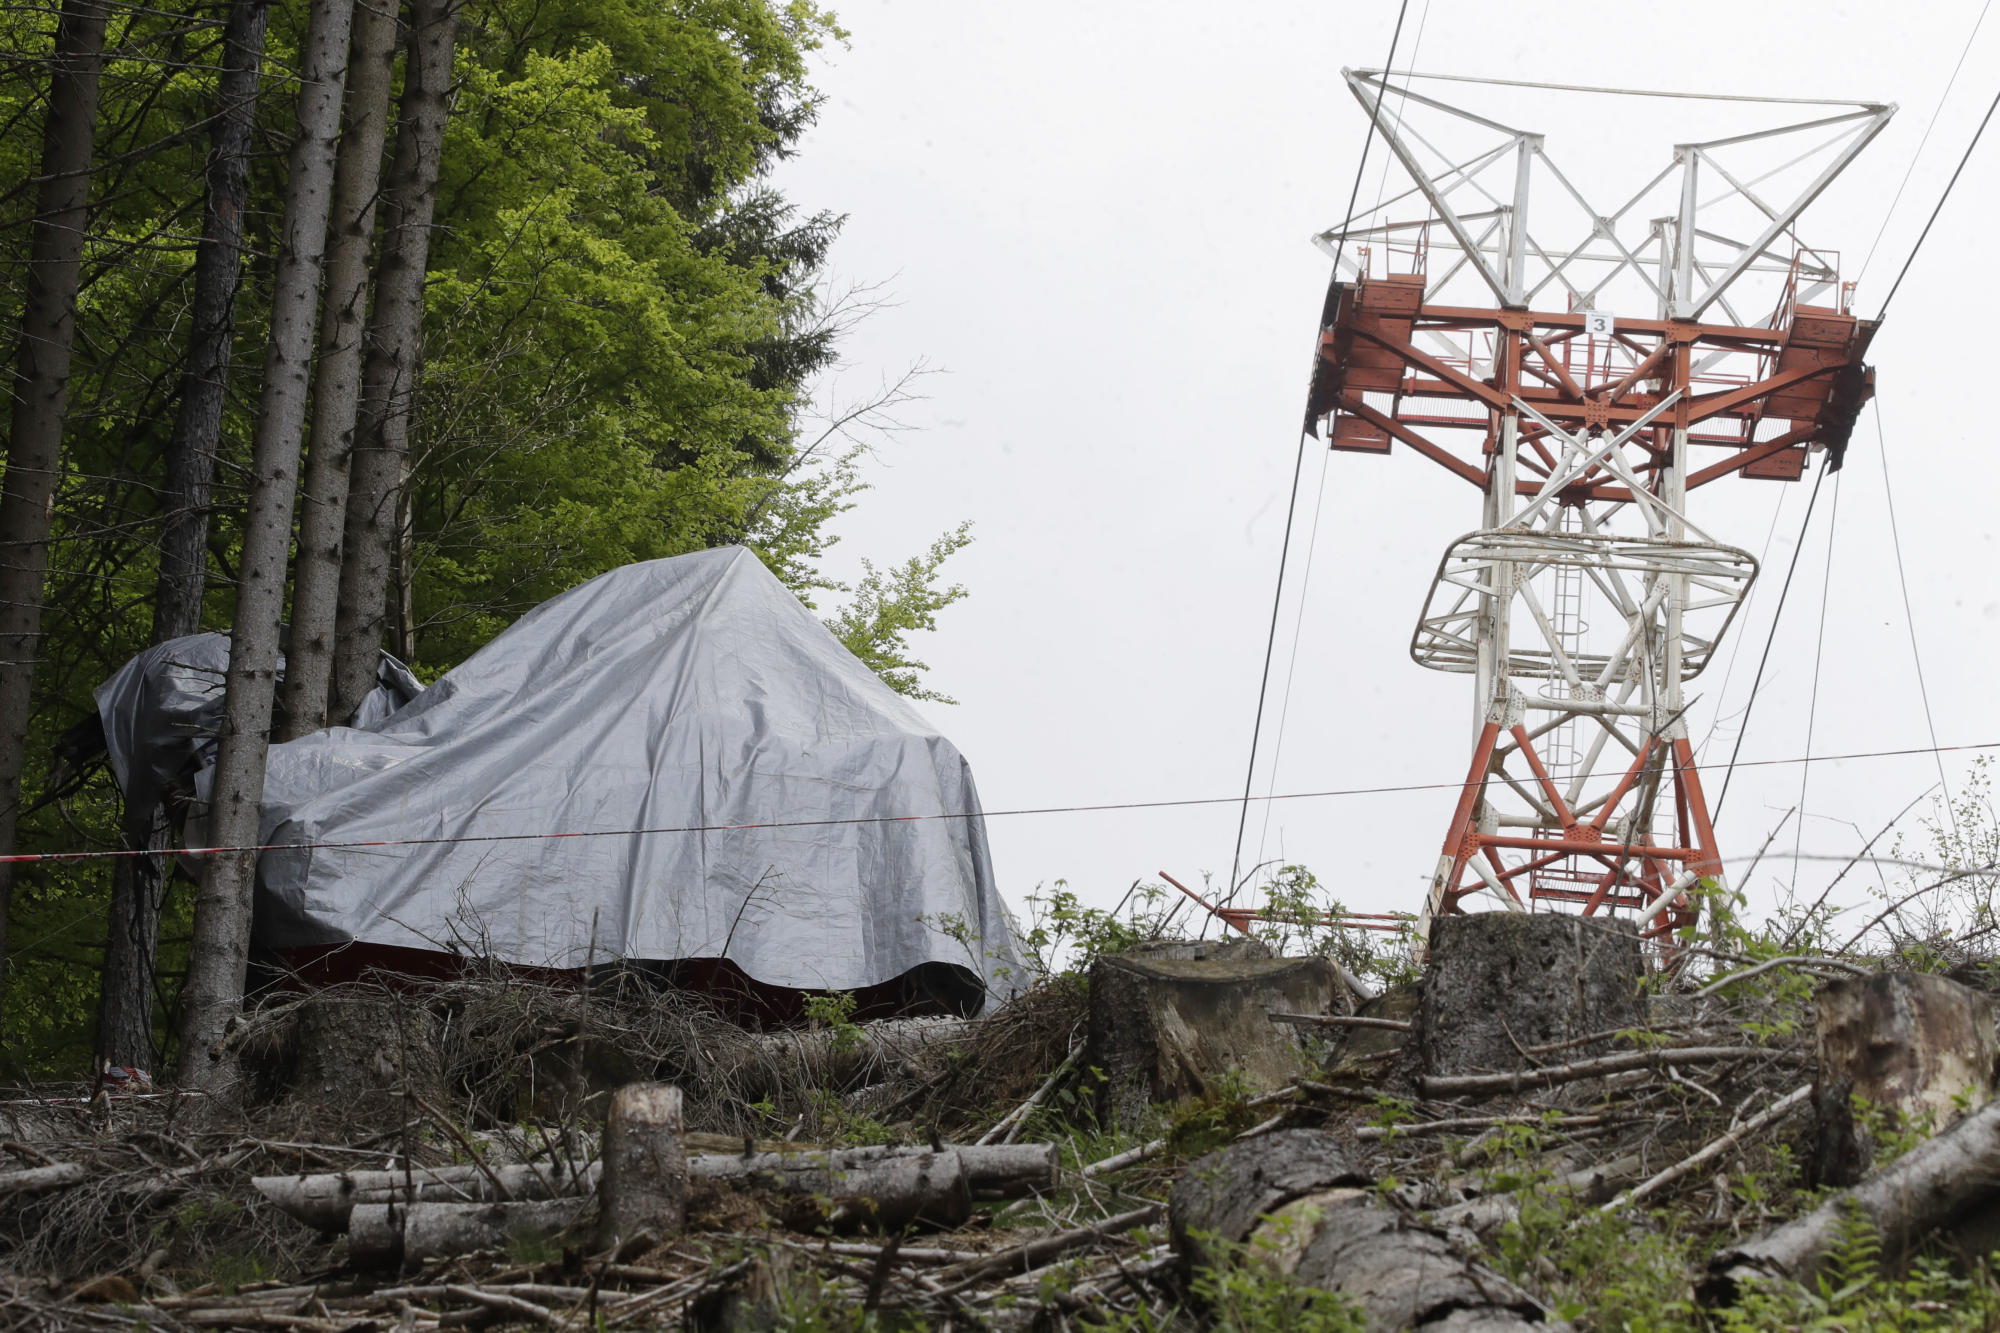 Judge: Blame in Italy cable car deaths rests with technician – Yahoo News